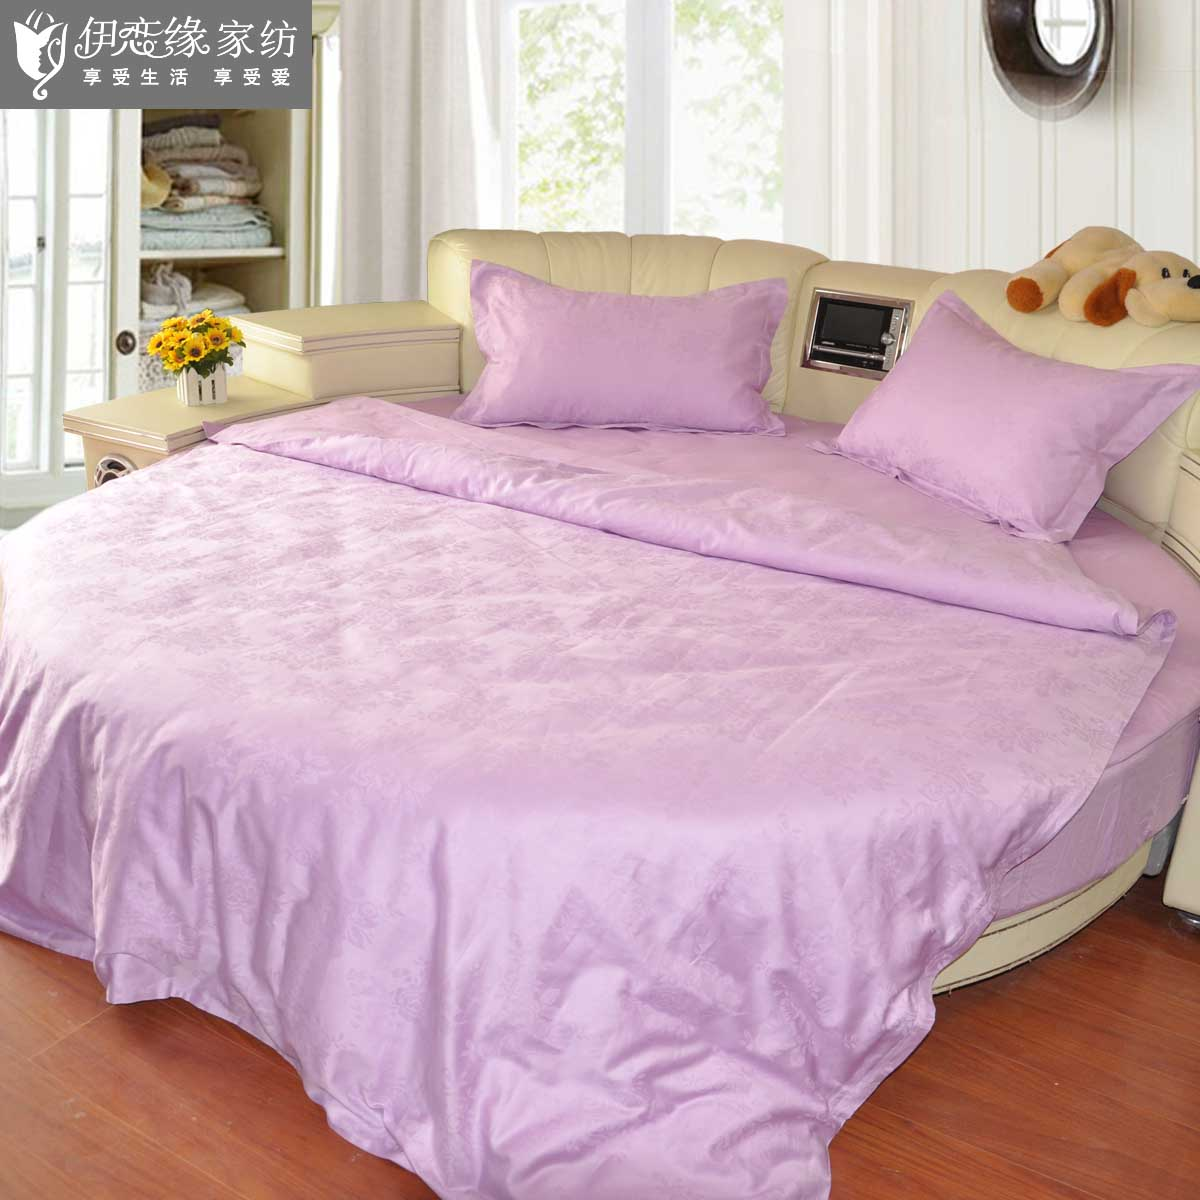 Love iraqi edge satin jacquard cotton round bed bedding package custom round bed li family of four lilac roses